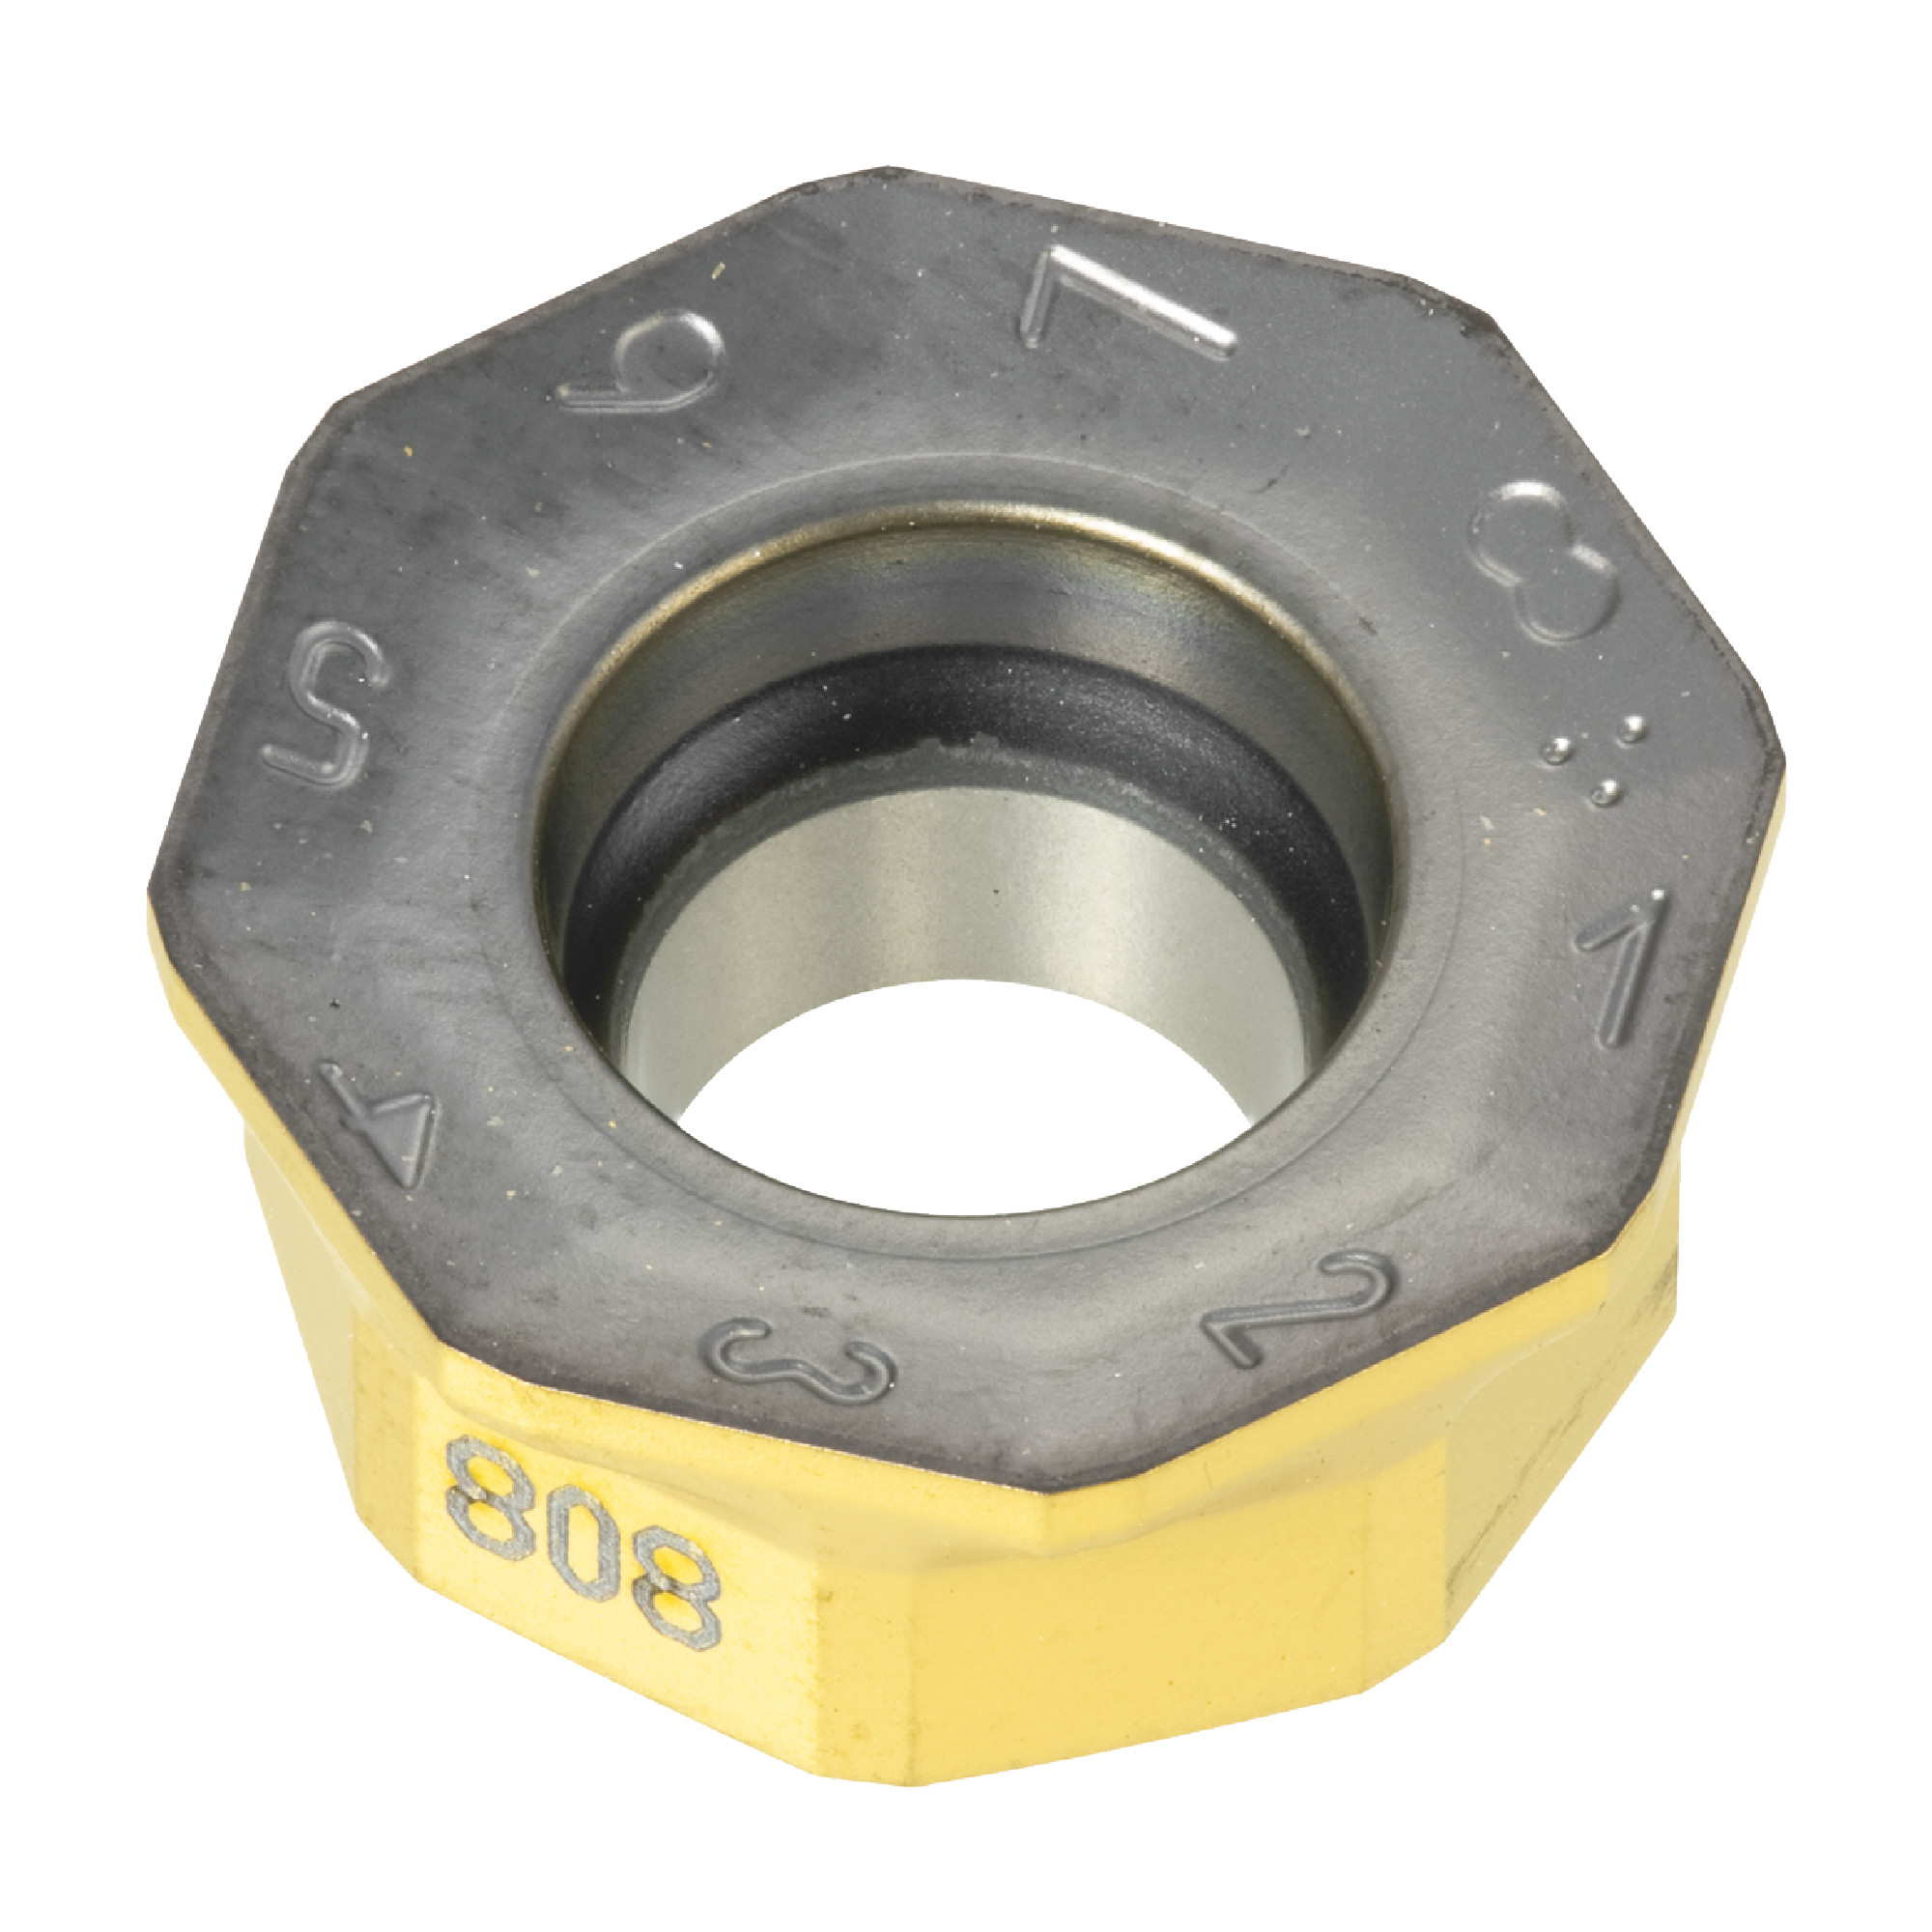 ISCAR - OXMT 0507R08-FF IC808 Octagon / INDEXABLE Carbide MILLING INSERT